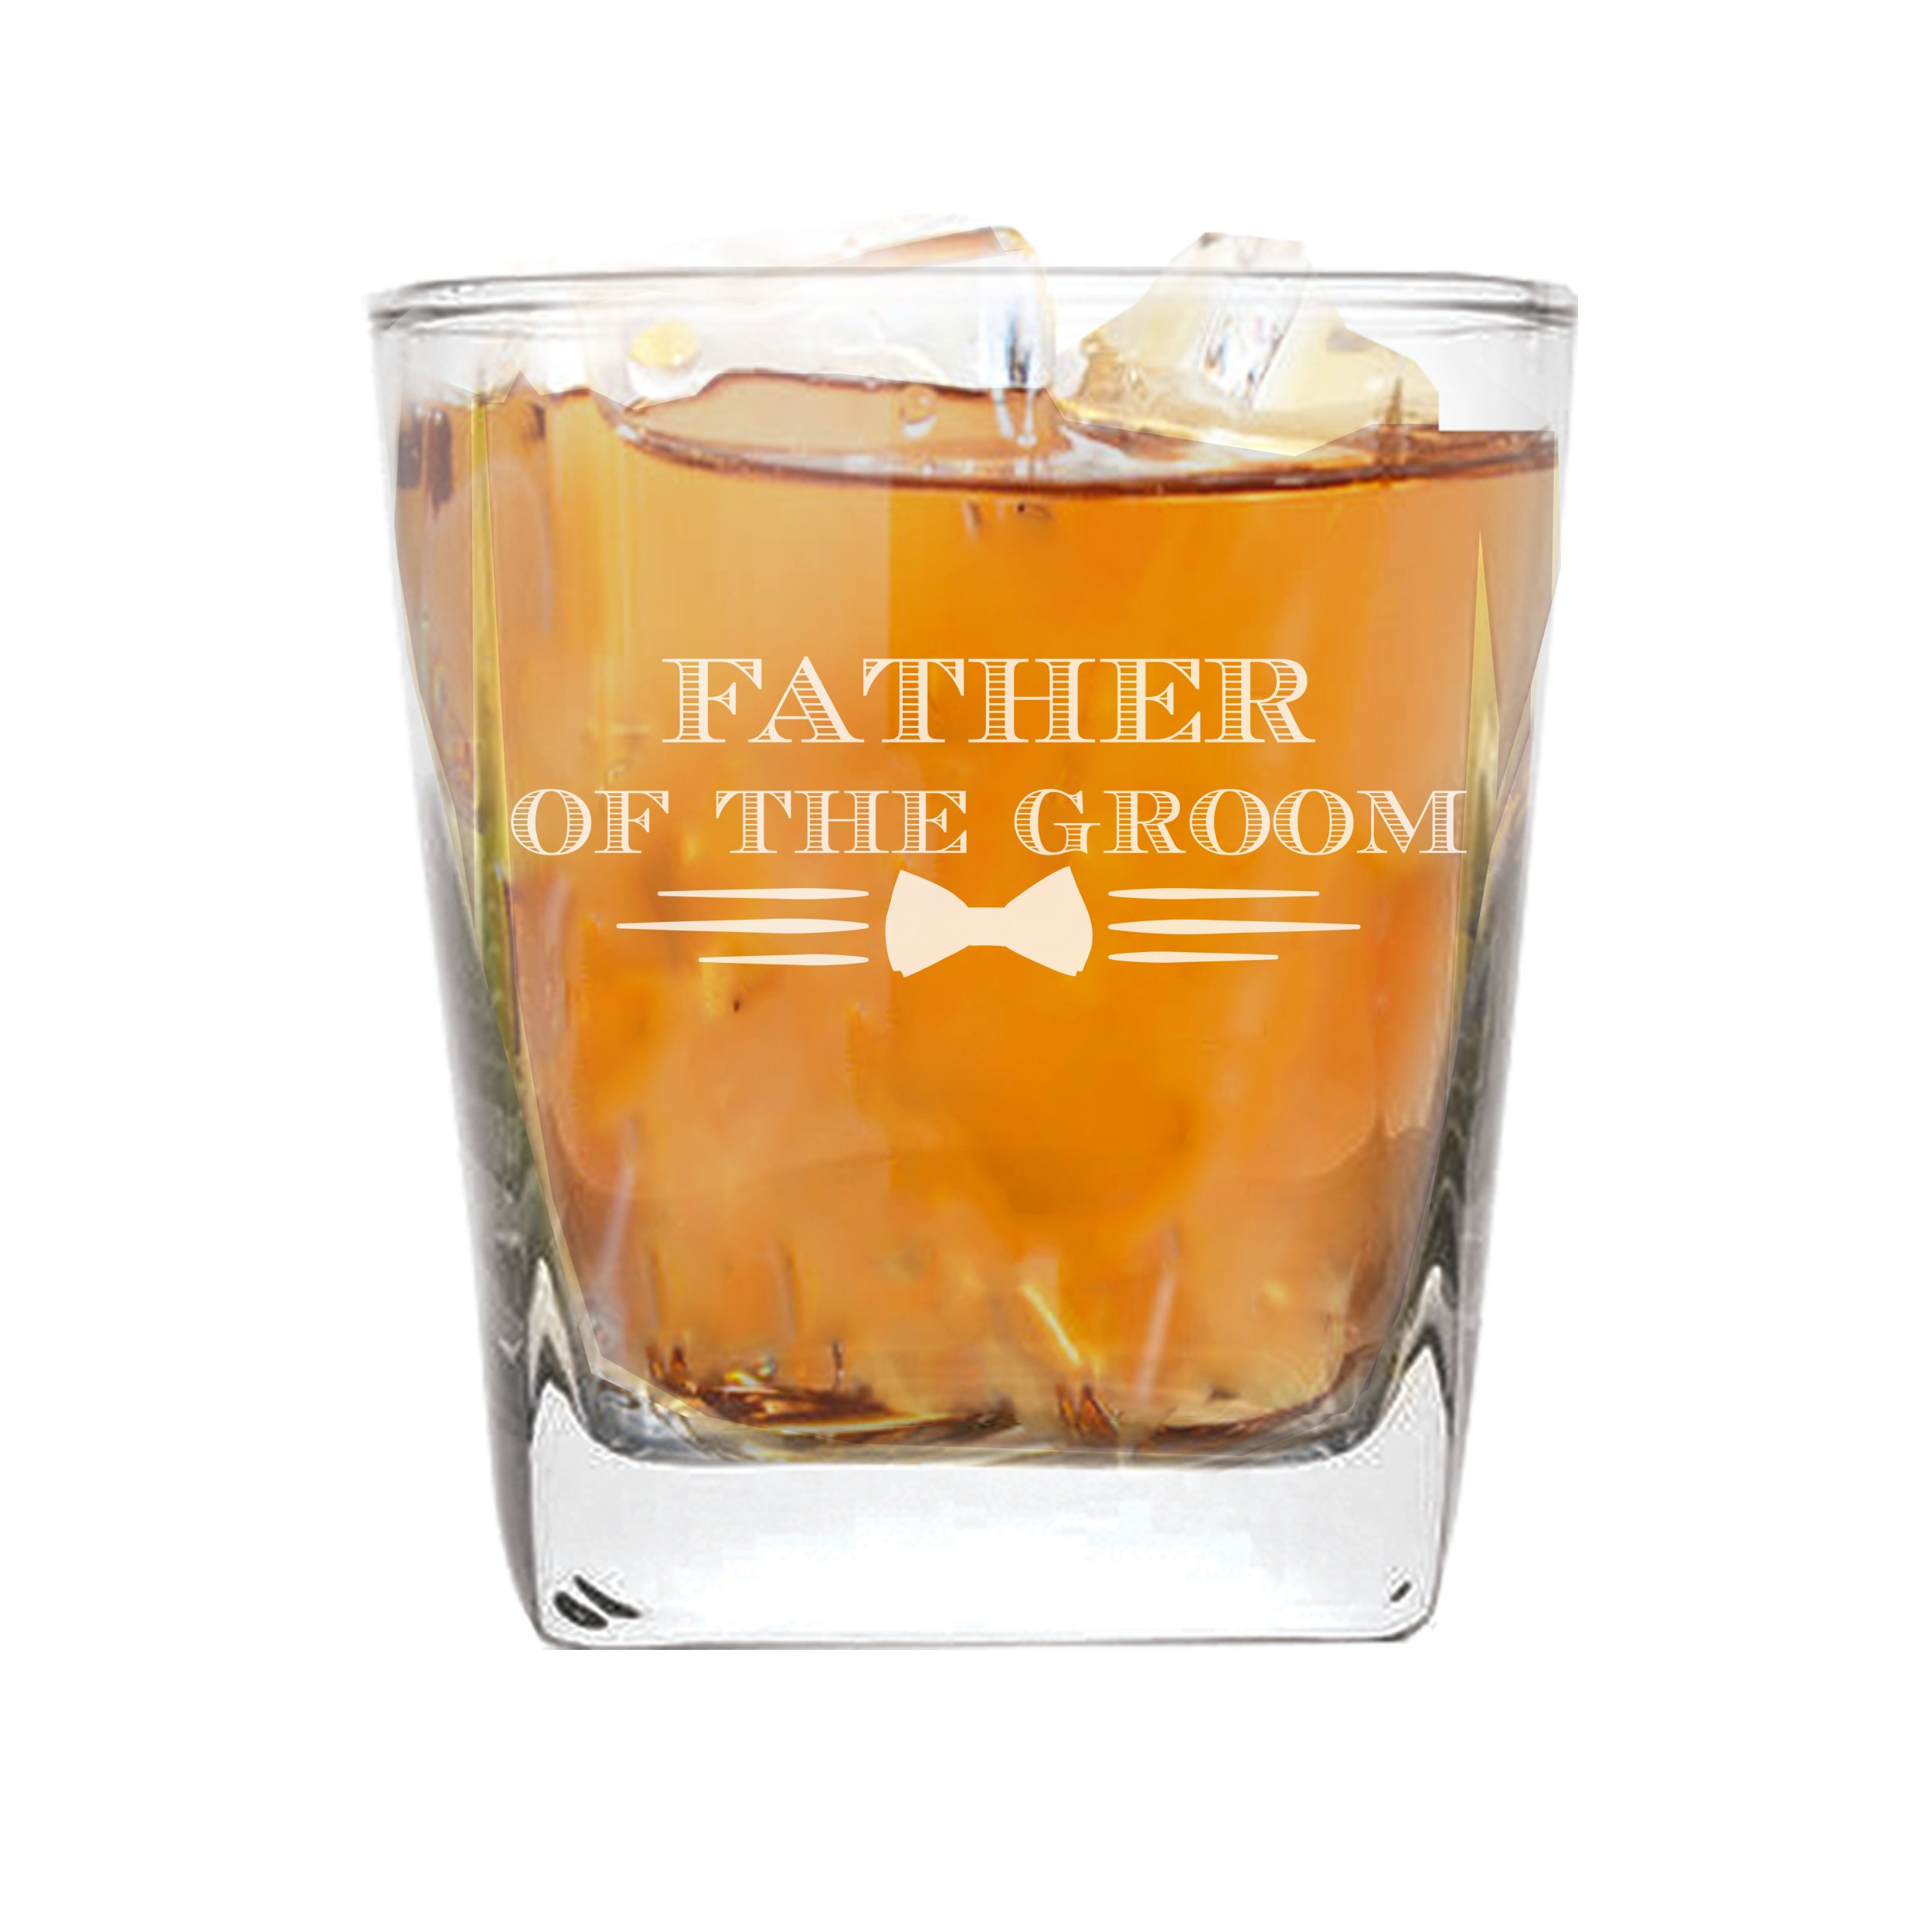 Whiskey Rocks Glasses for Bachelor Party, Weddings, Wedding Favors, Whisky Gifts (Bow Tie Style 9oz, Father of the Groom Glass)